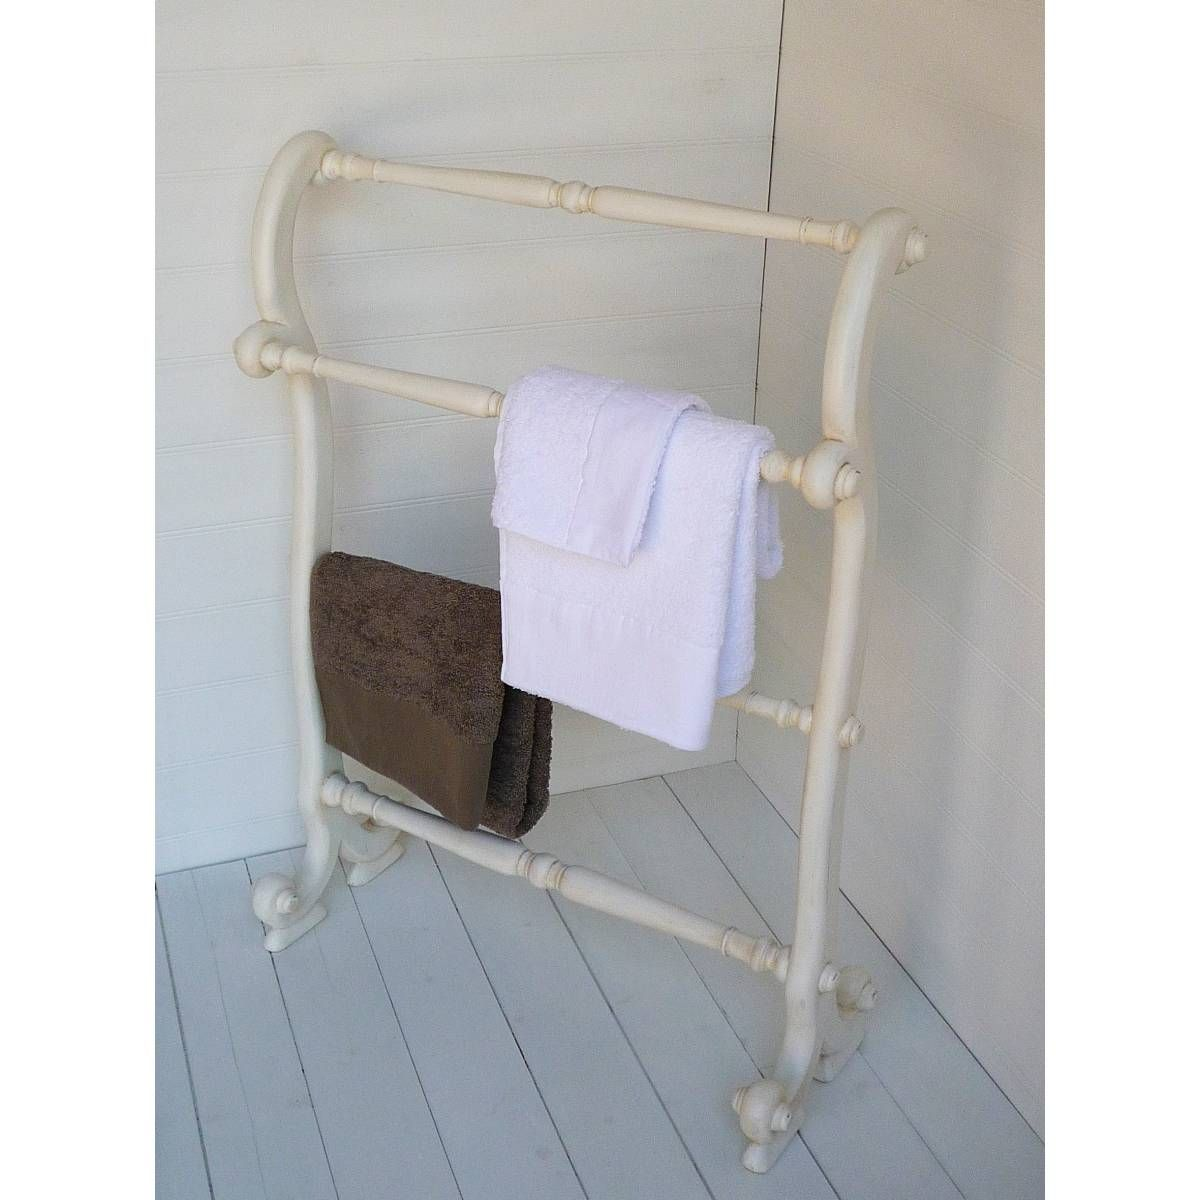 frenchshabbychicbathrooms home bathroom bathroom accessories french wooden towel railbathroom